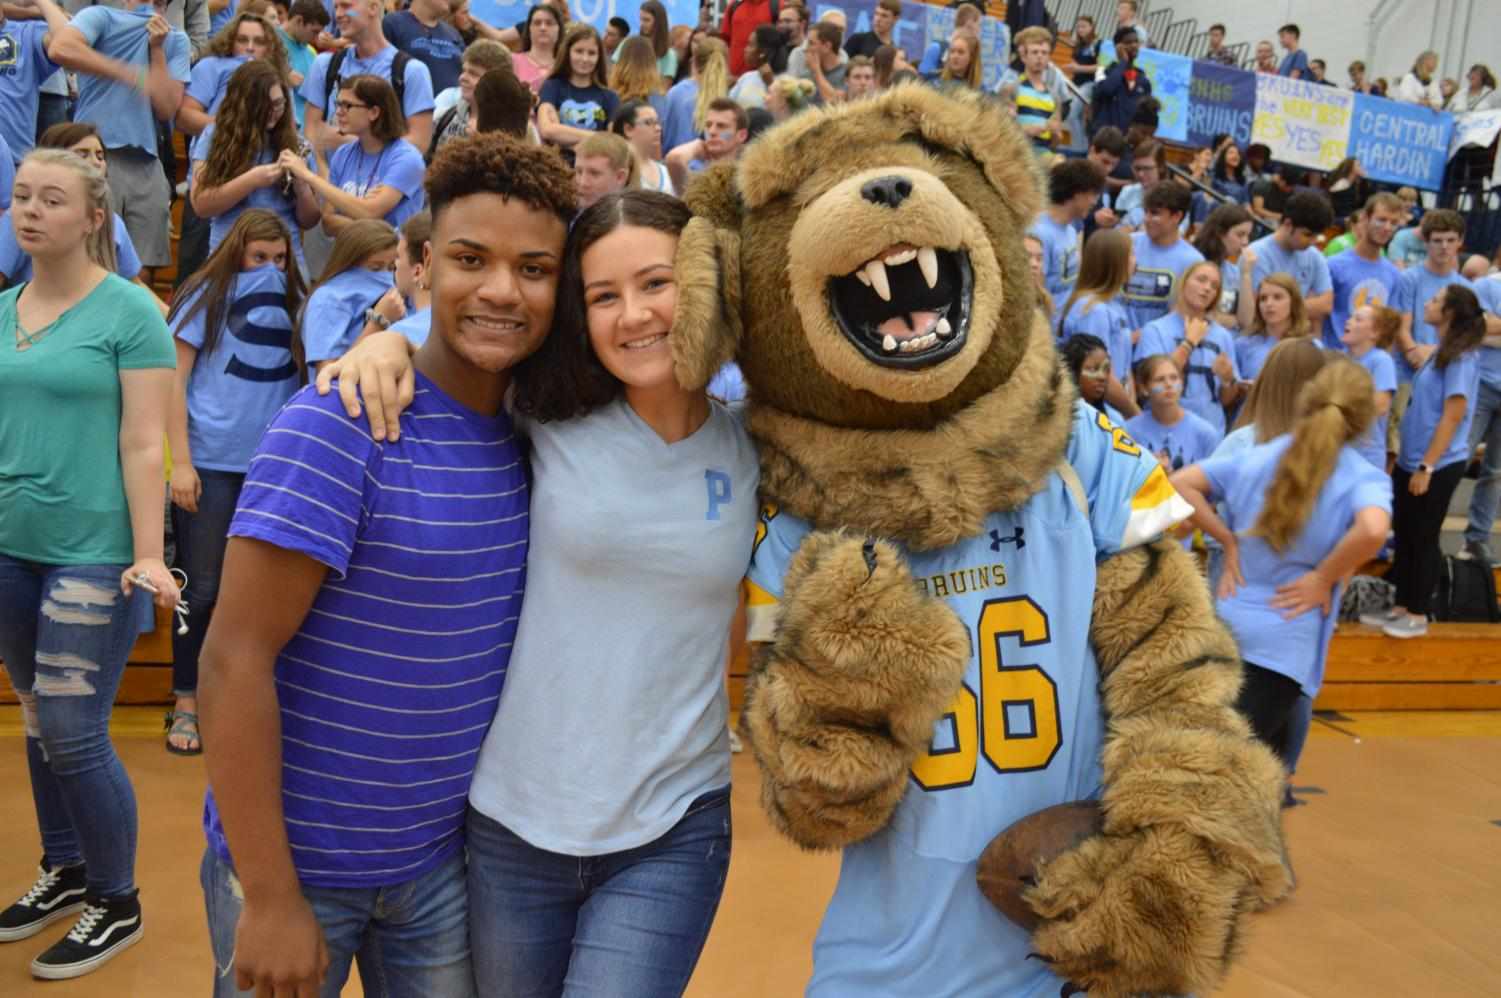 School Colors: Deion Lindsey and Rachel Cummins take a picture with the mascot while dressed in their class colors.